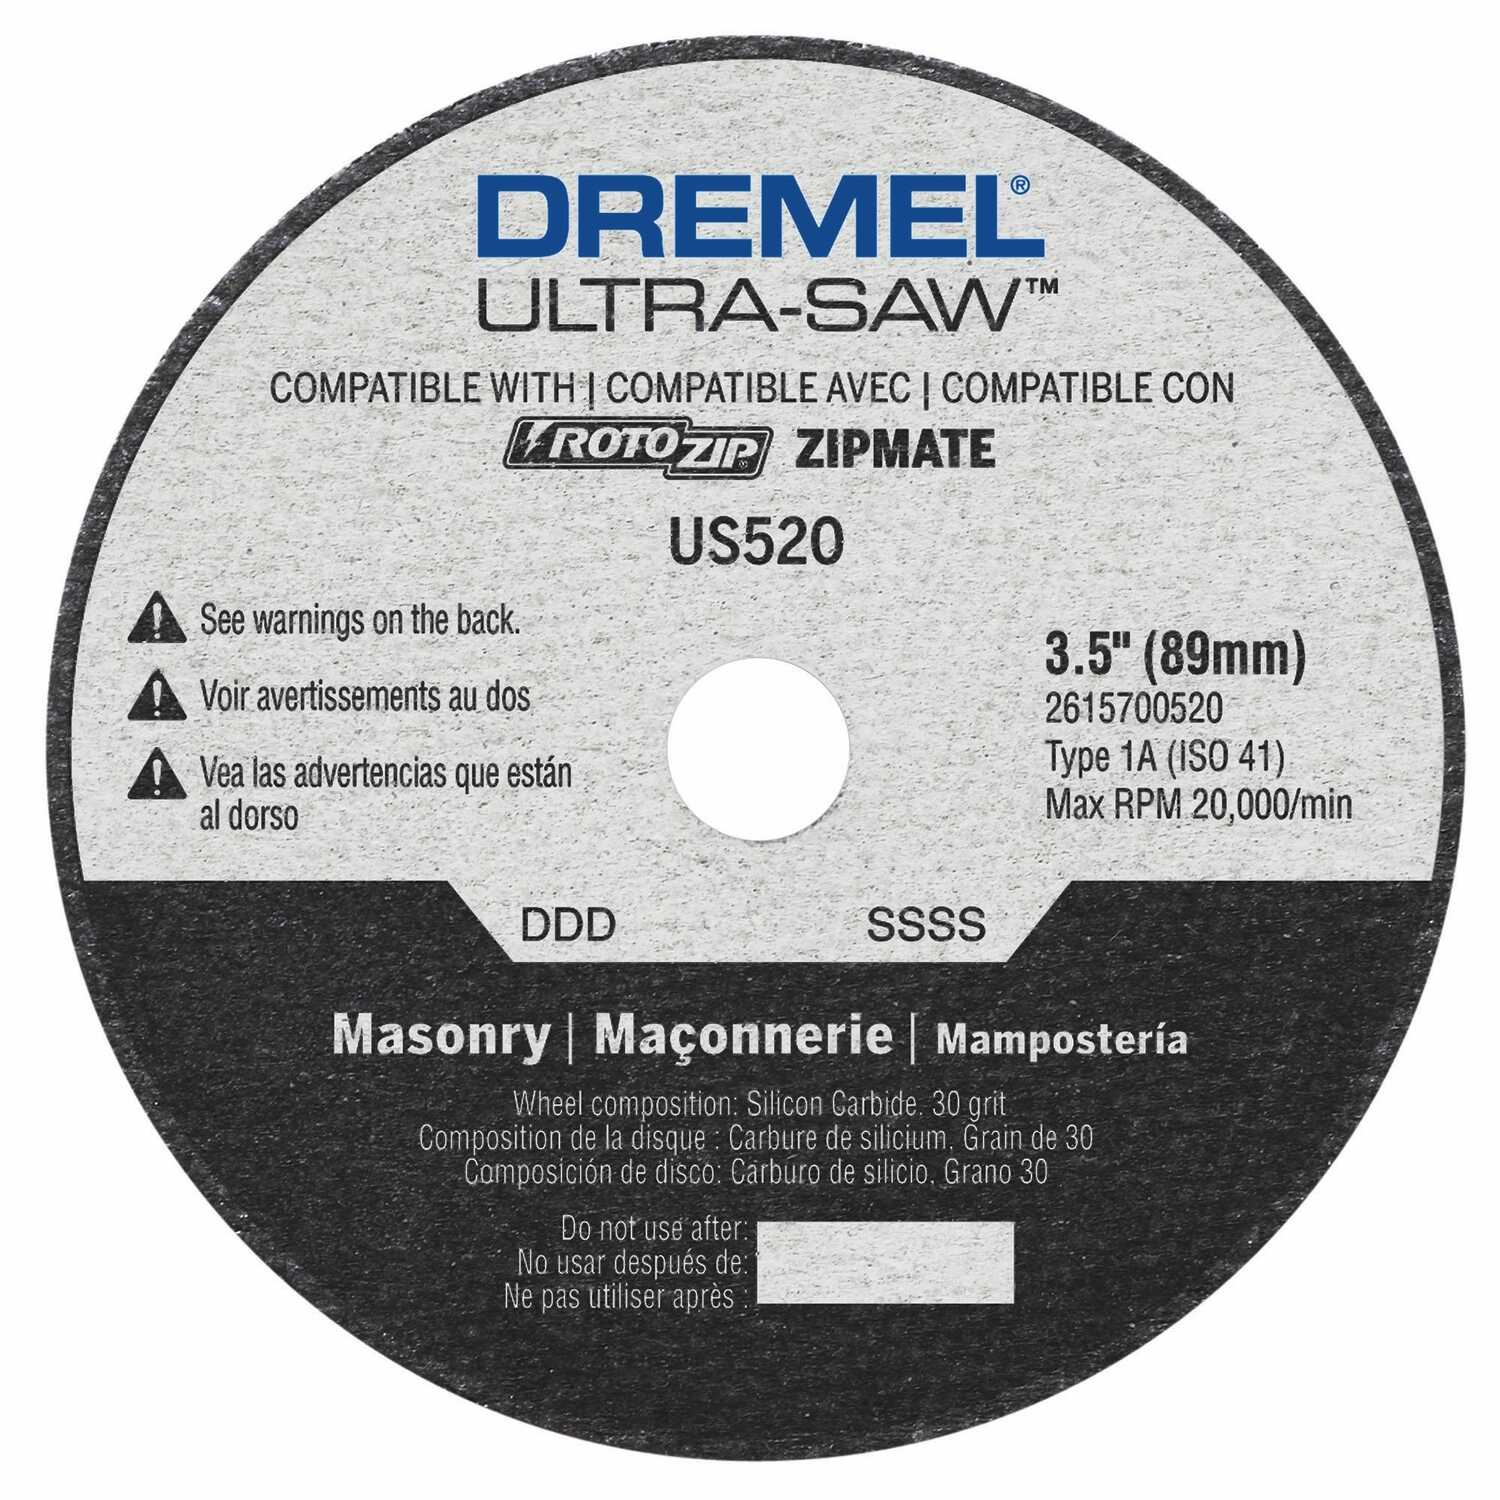 Dremel  Ultra-Saw  3-1/4 in. Silicon Carbide  Masonry Cutting Wheel  .094 in.  x 1/2 in. in.  1 pc.